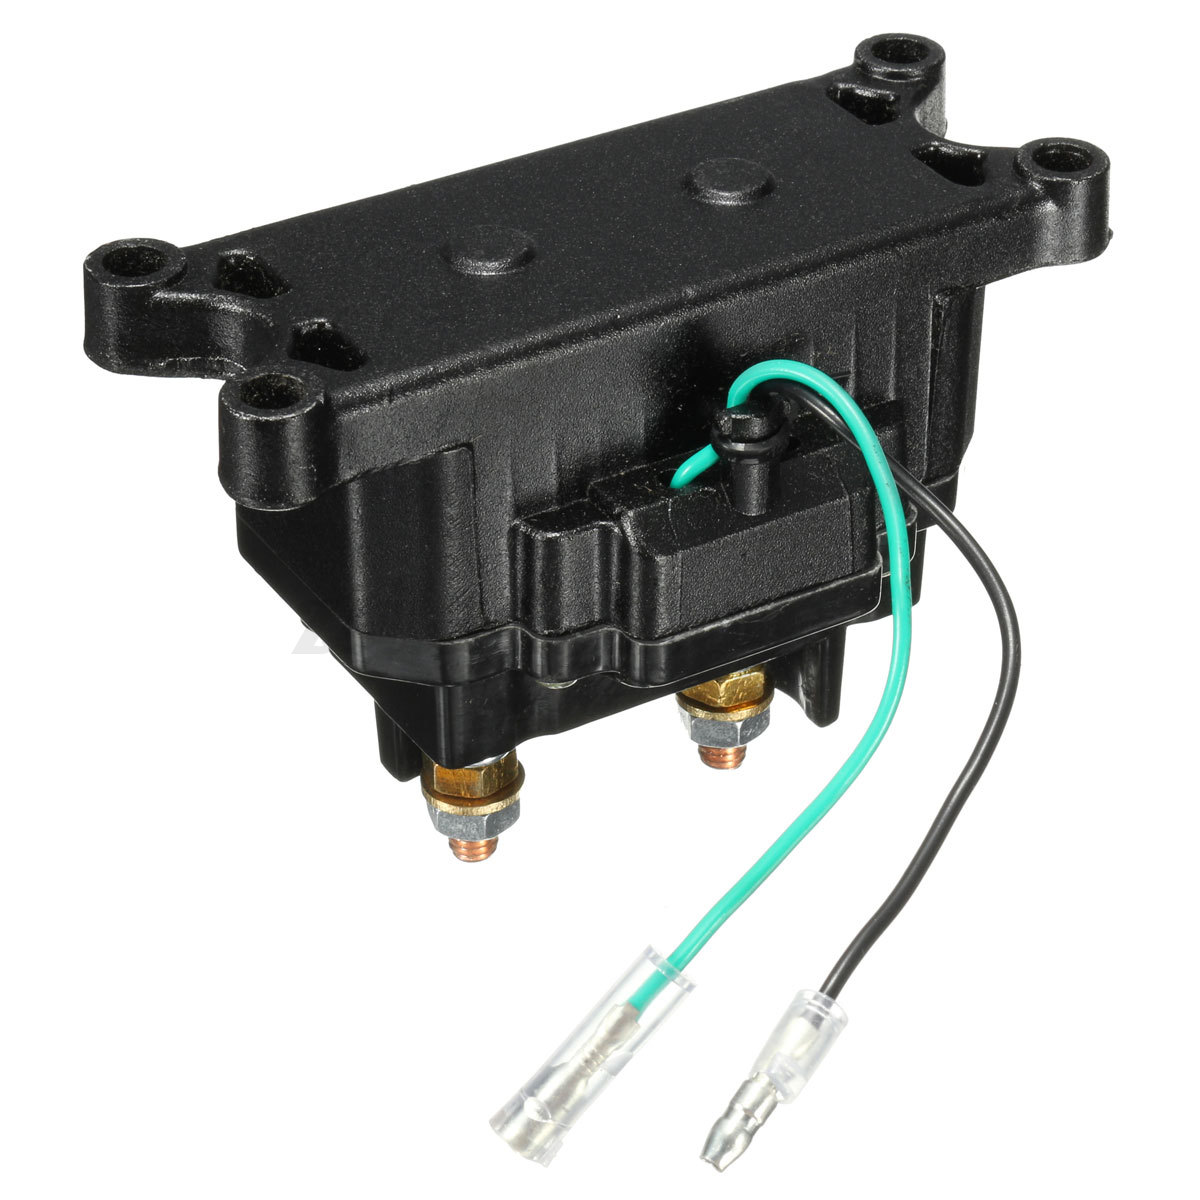 12v Rocker Switch Winch Wiring Diagram Modern Design Of On A Led Solenoid Relay Contactor Thumb Marine Switches